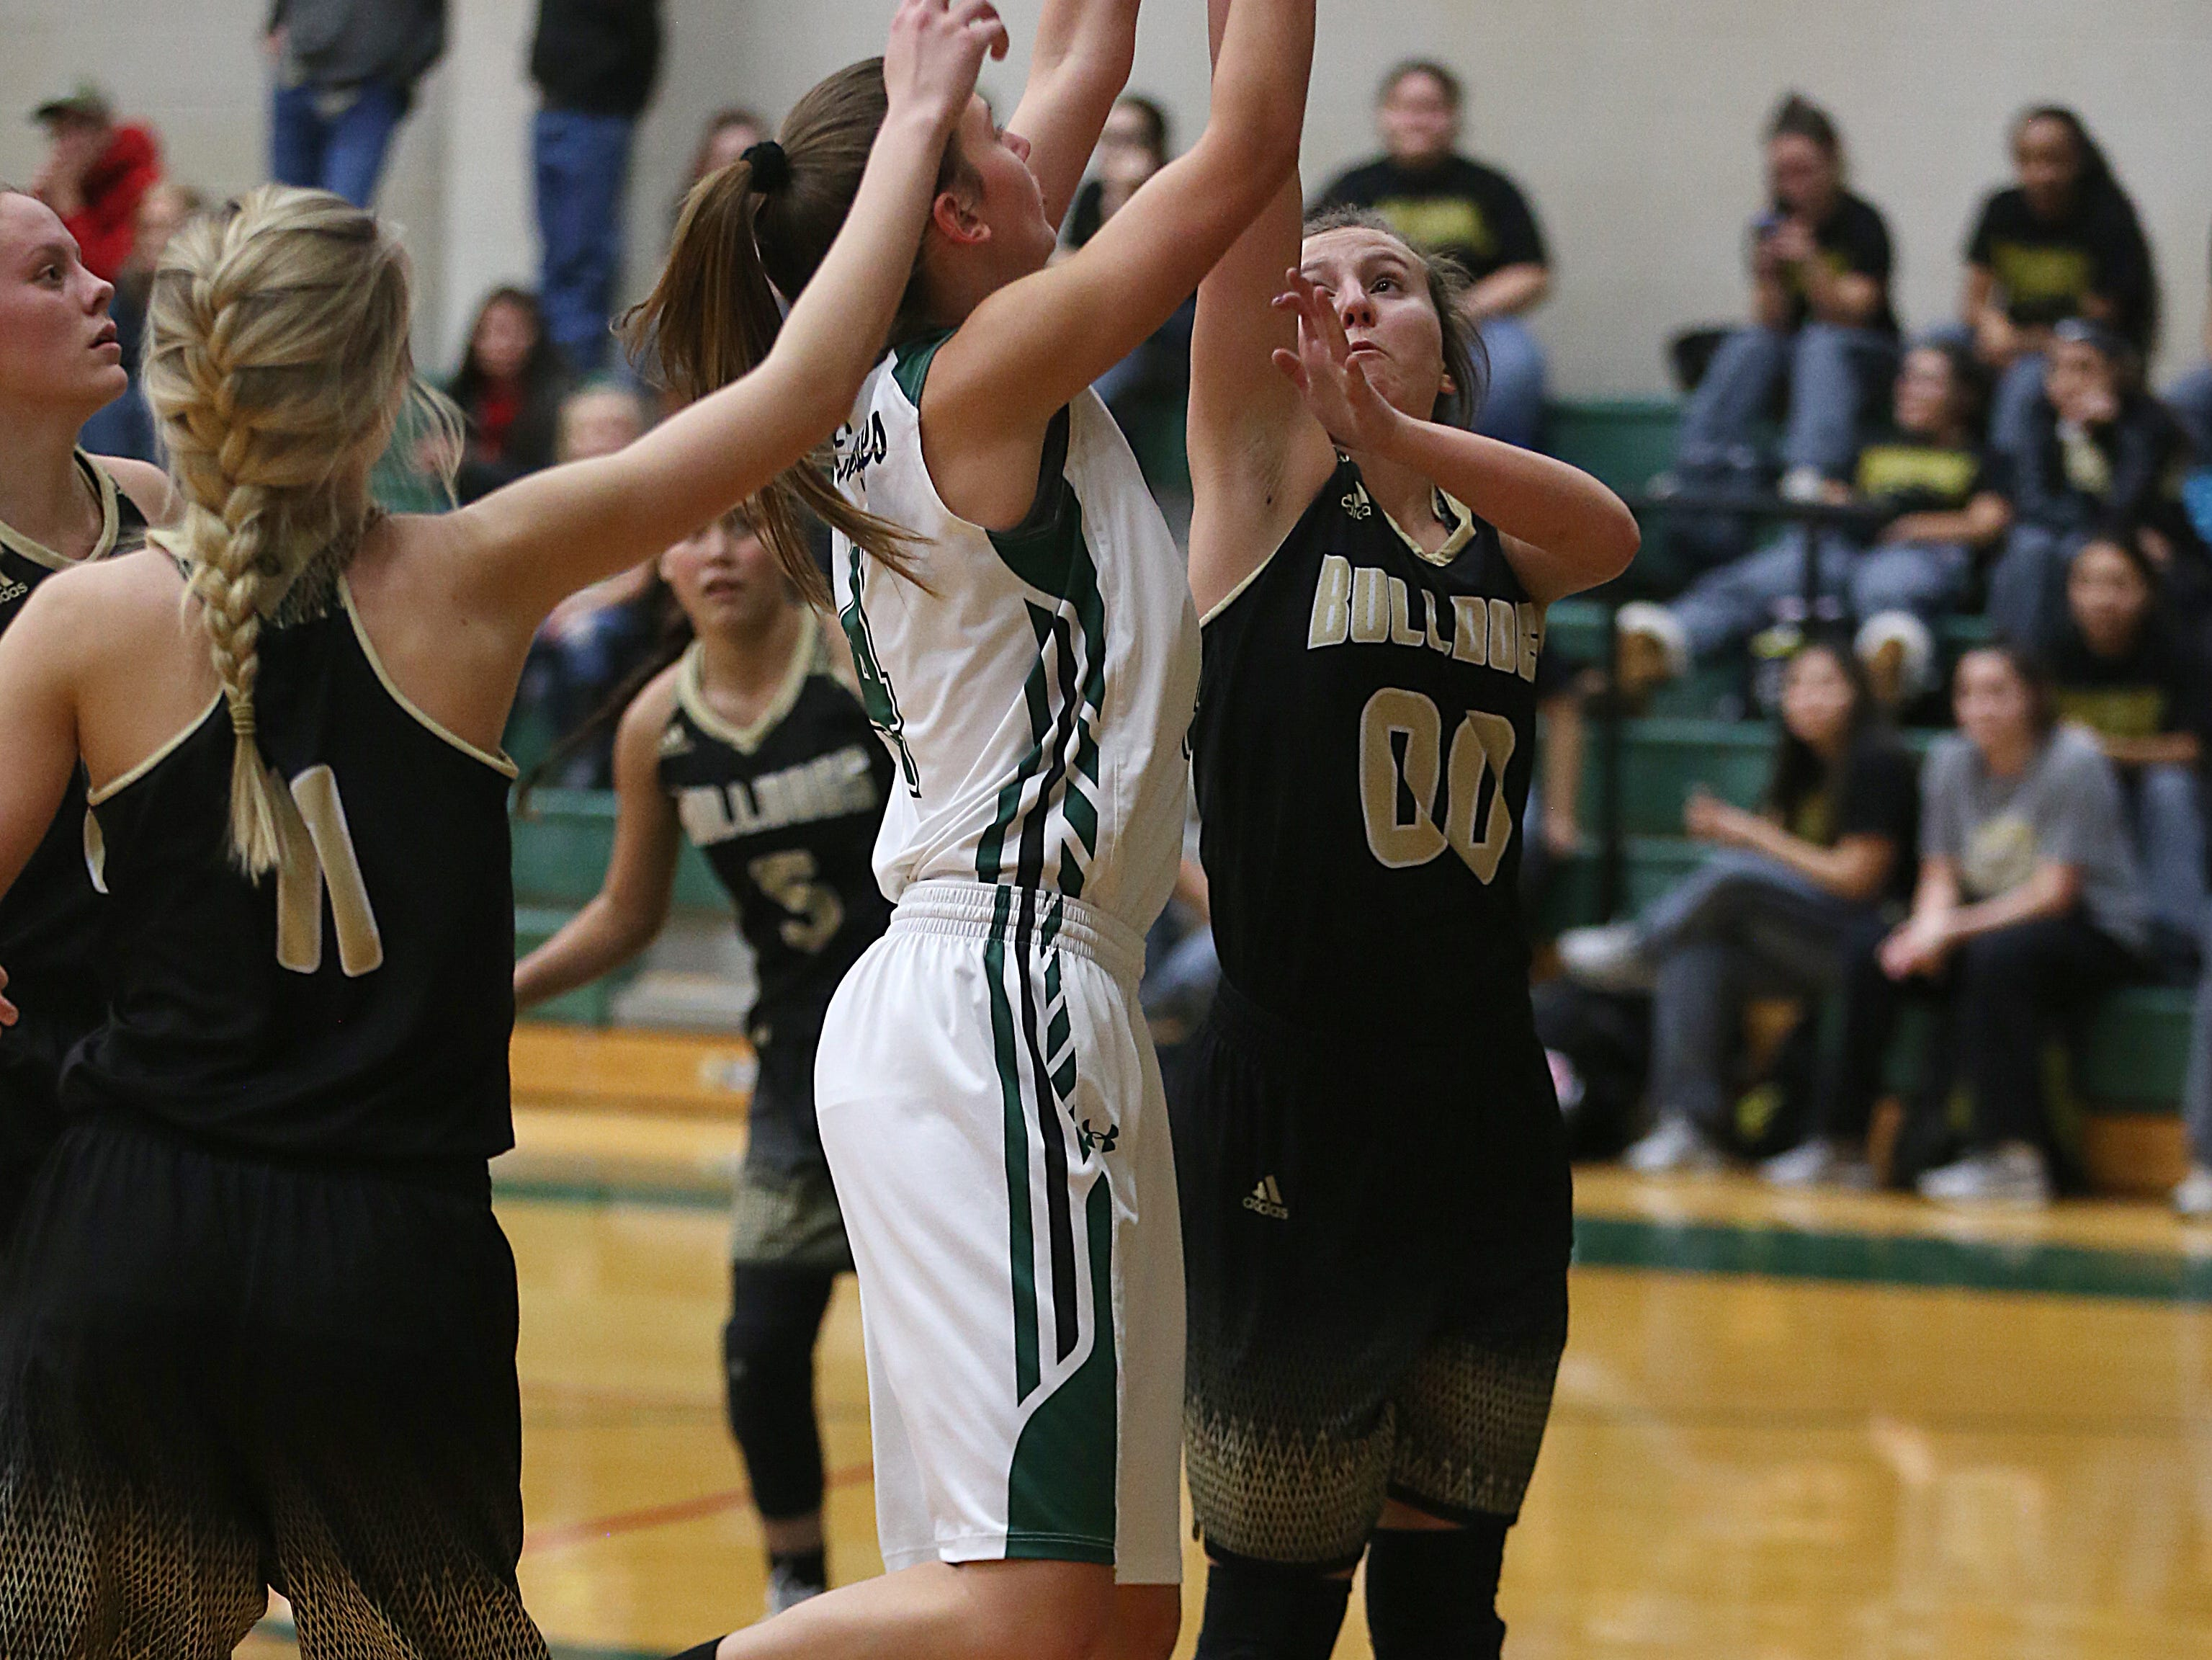 Grape Creek's Rachel Porter (#4) shoots for a basket as Brady's Lacy Cox (#4) tries to block Friday, Dec. 14, 2018 during their game in Grape Creek. Brady won 48 to 28.